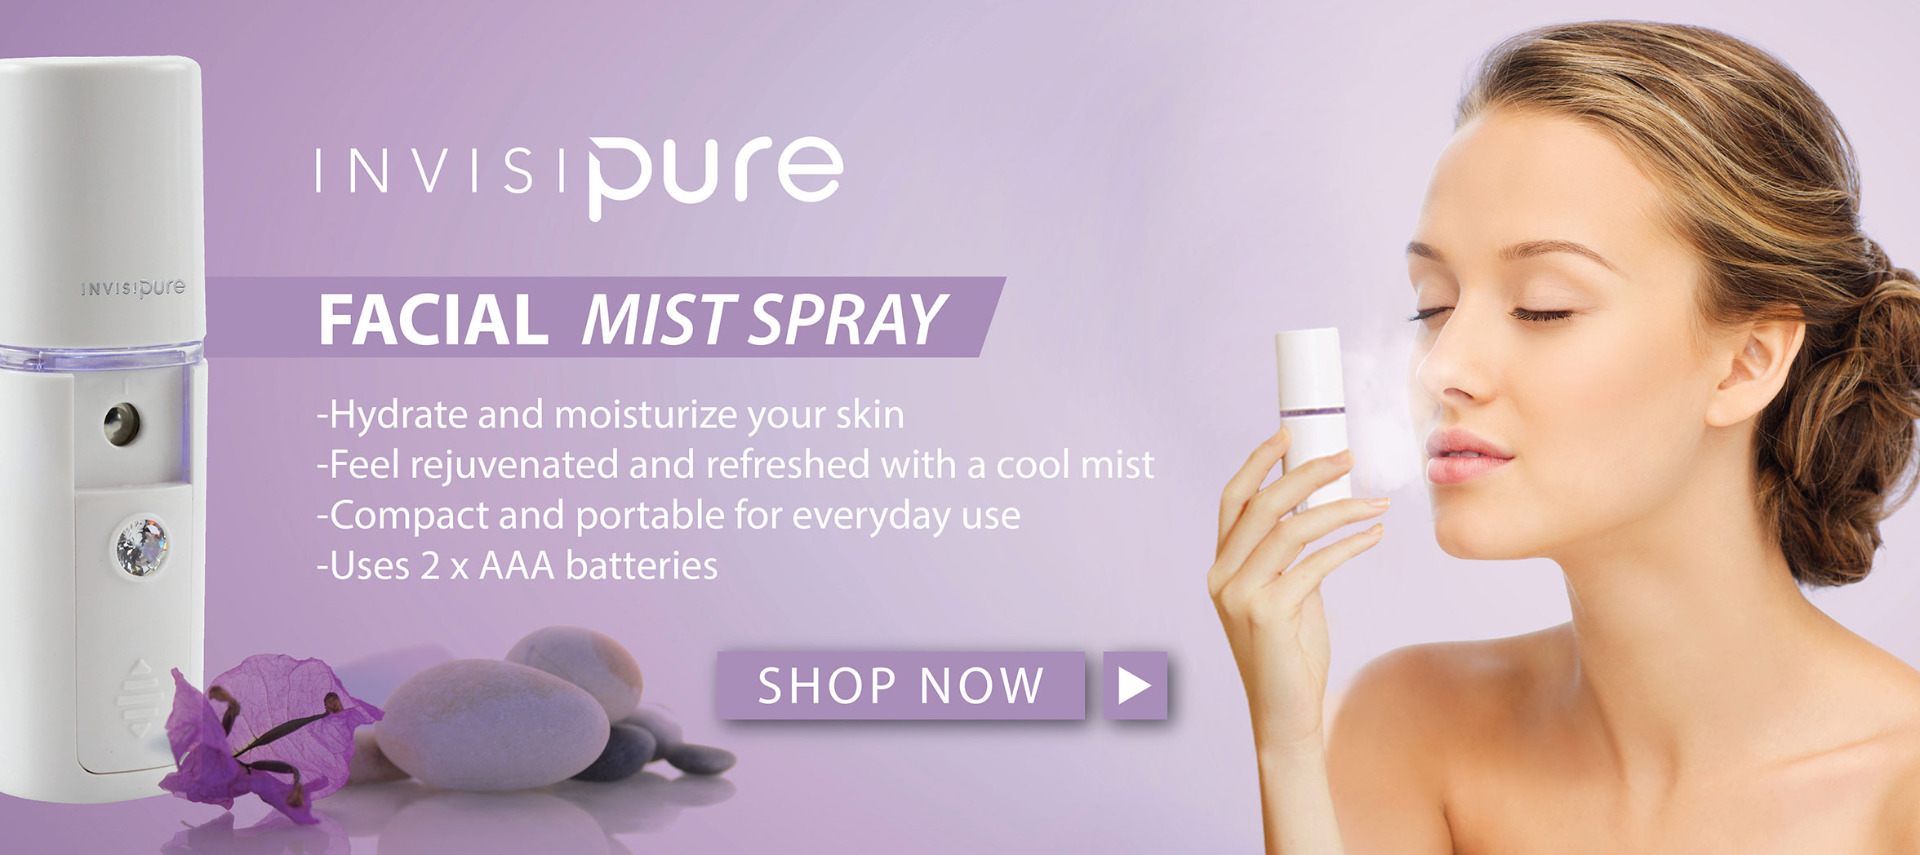 InvisiPure Facial Mist Spray